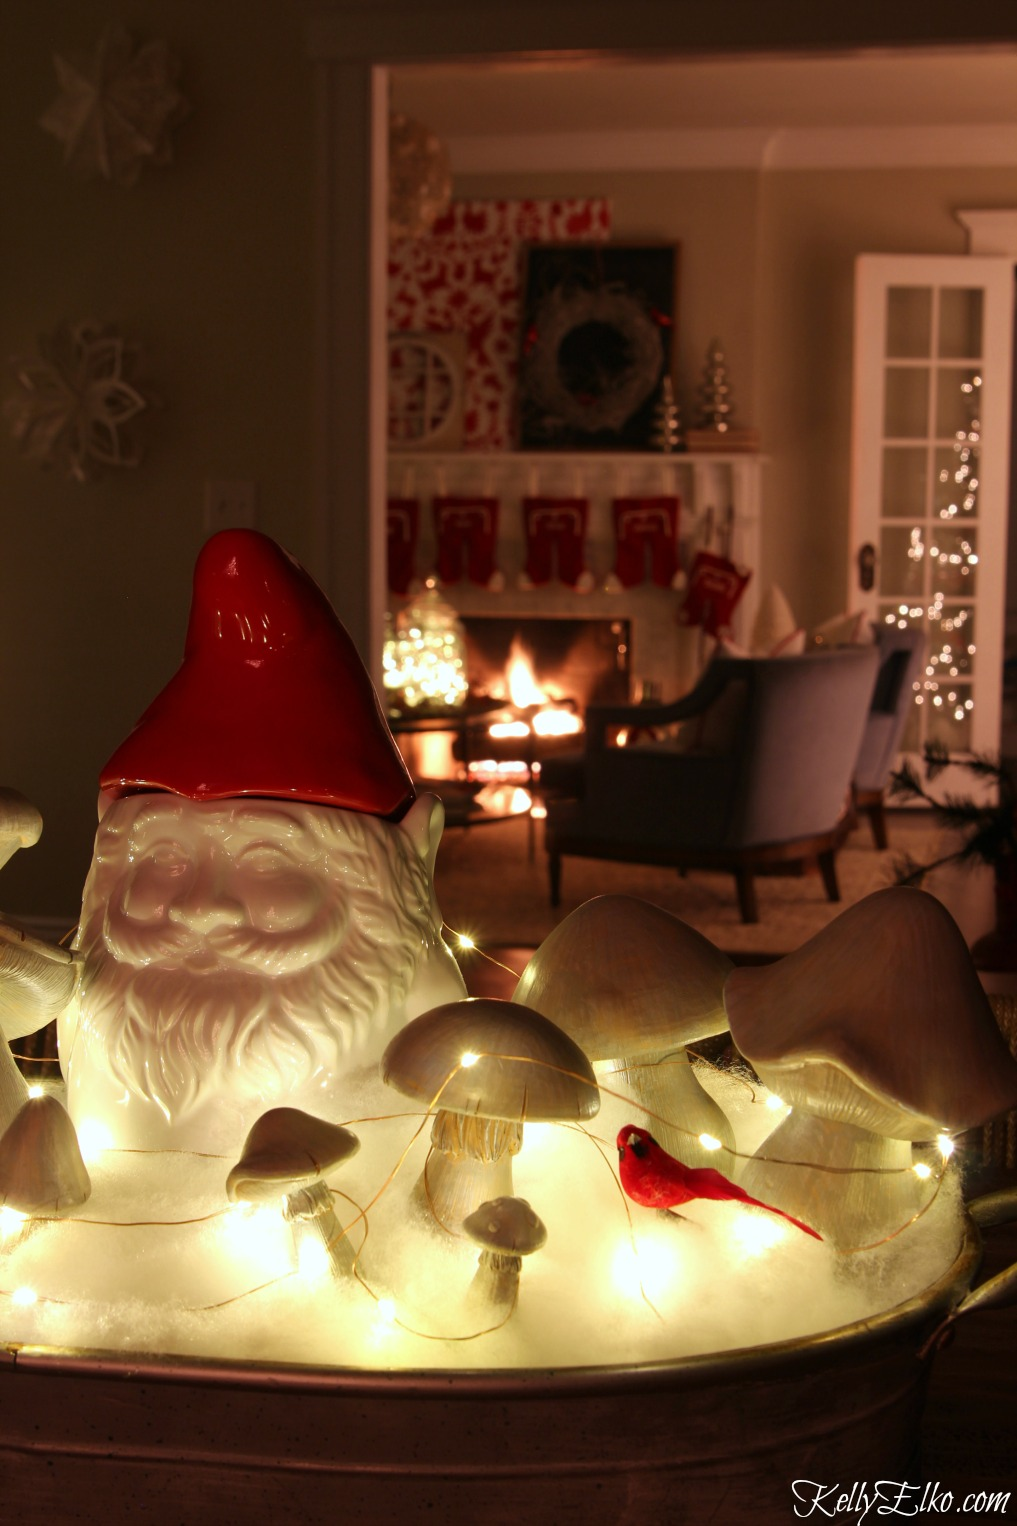 Christmas Lights at Night Home Tours - 35 homes by the glow of light - love this fun gnome centerpiece kellyelko.com